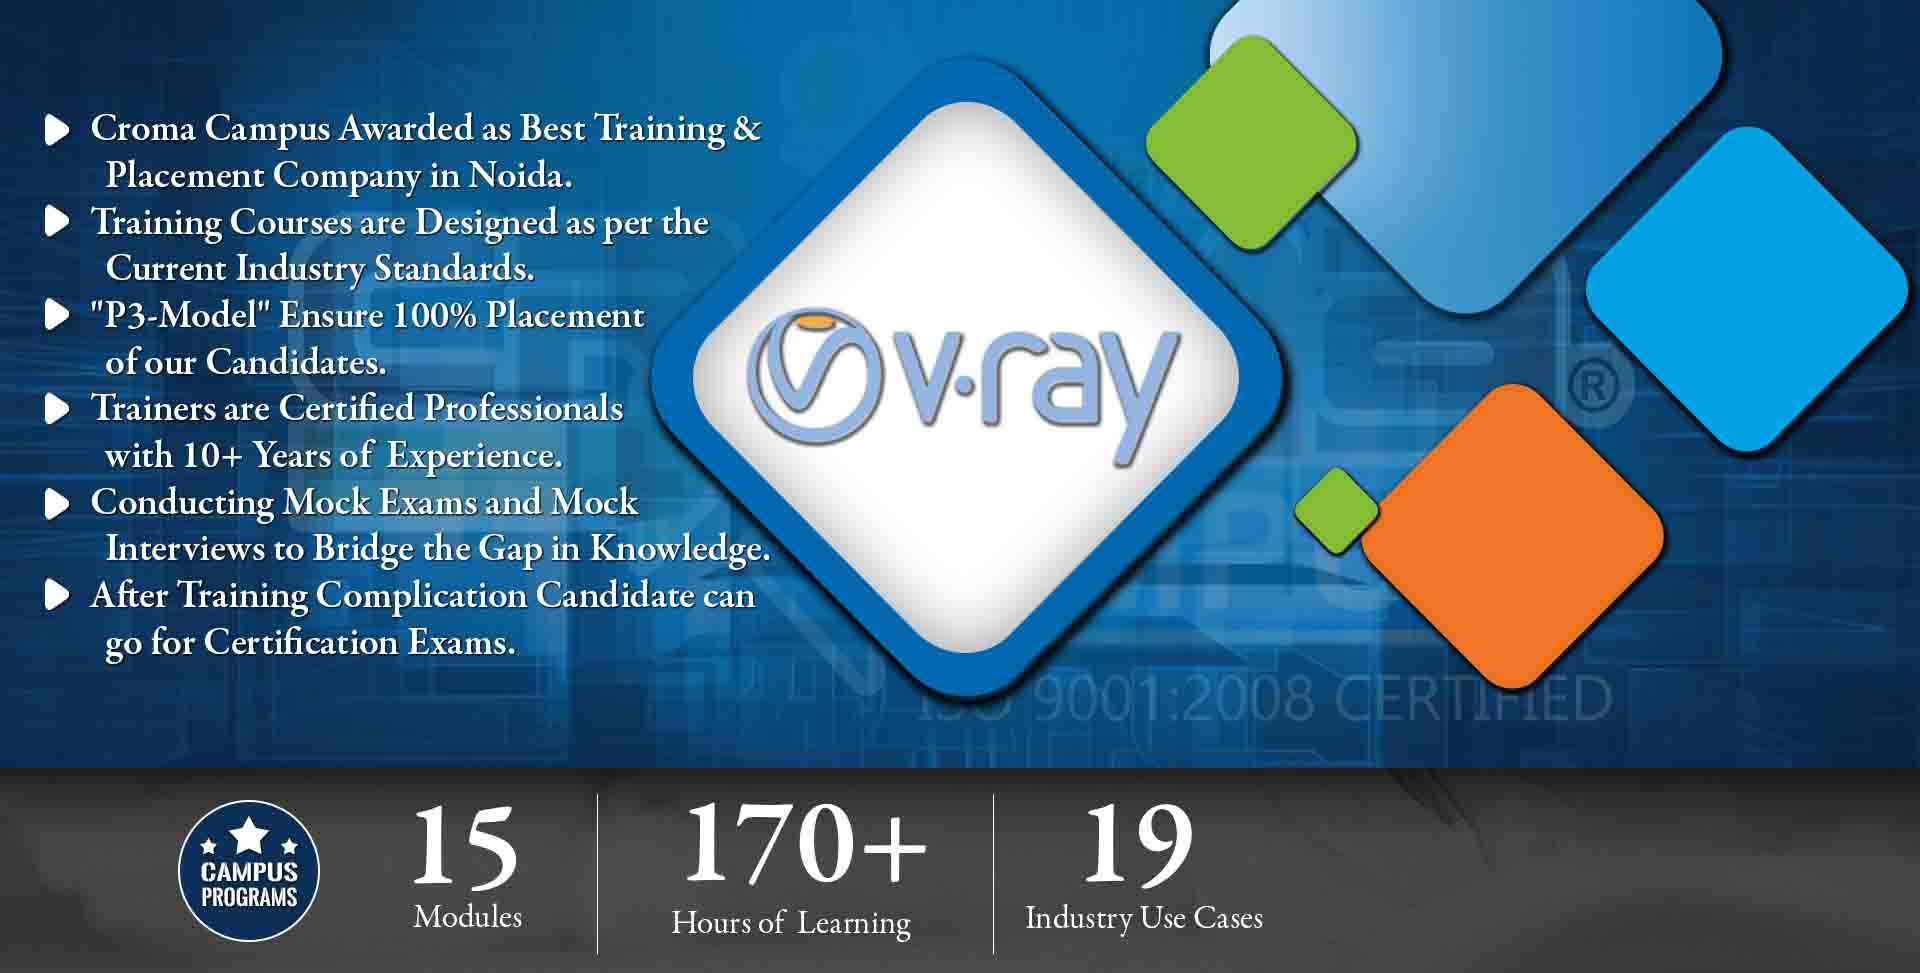 Vray Training in Gurgaon- Croma Campus